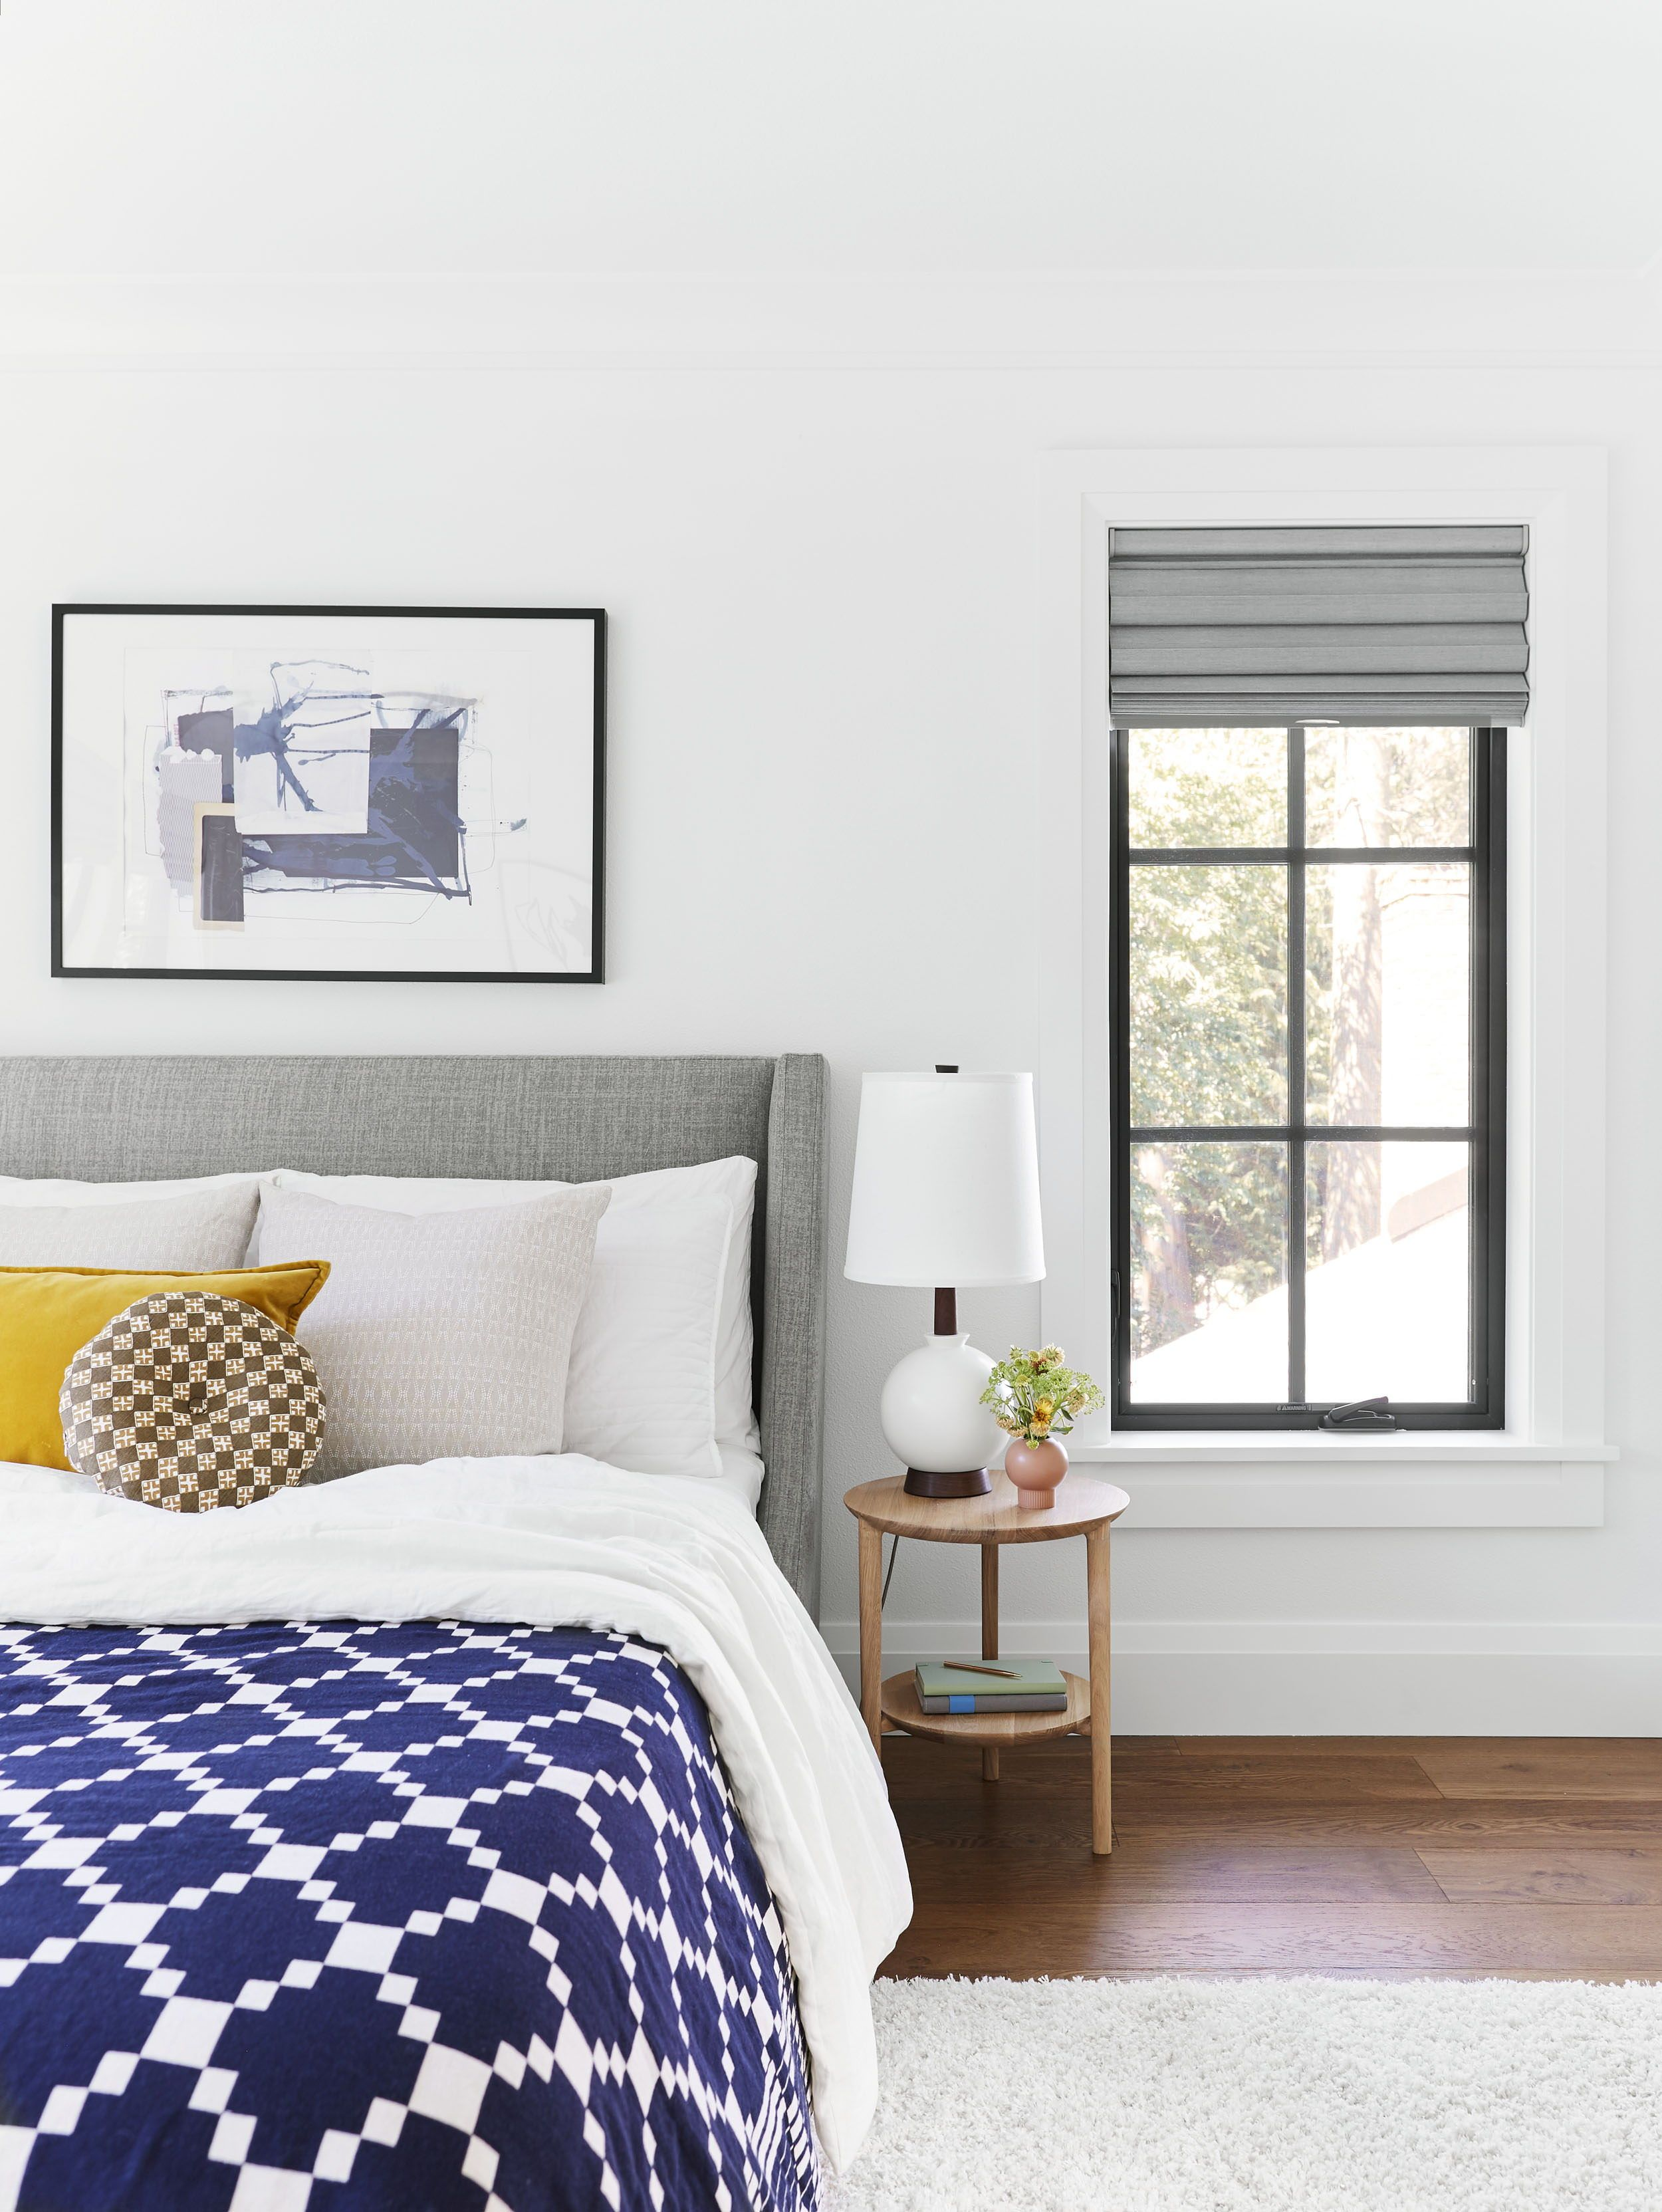 14 Rules To Follow To Design Style The Perfect Bedroom Small Guest Bedroom Small Bedroom Decor Bedroom Decor